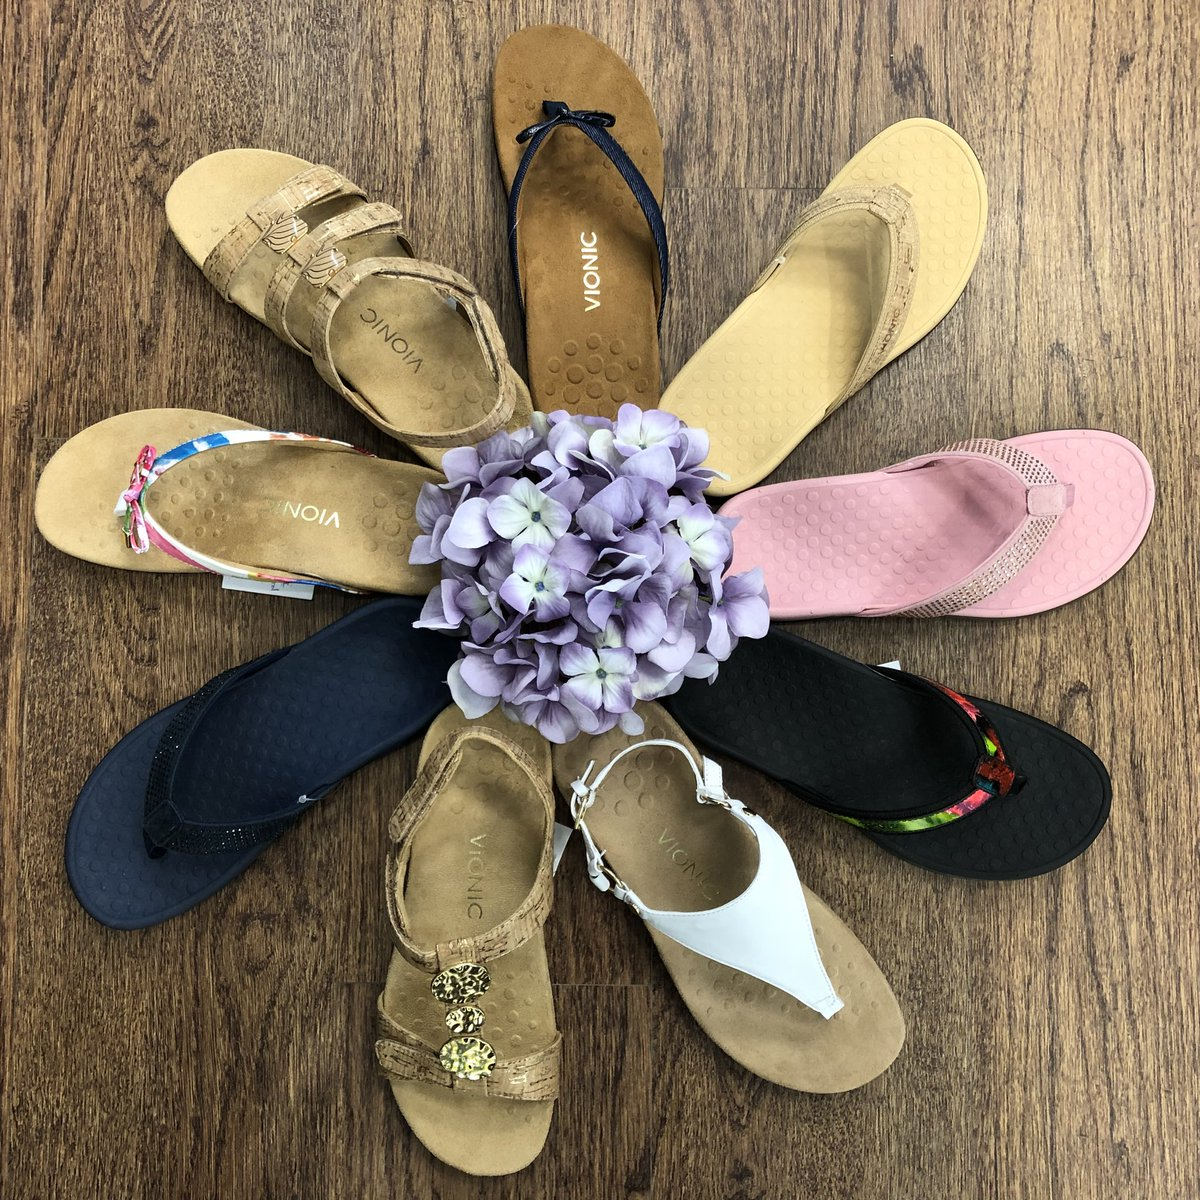 test Twitter Media - Happy First Day of Spring! ☀️ It's time for warm weather & pretty #Vionic sandals. 🌸 #greatarchsupport #pamperyourfeet #ptbo #comfortineverystep https://t.co/rb3MjYLUh8